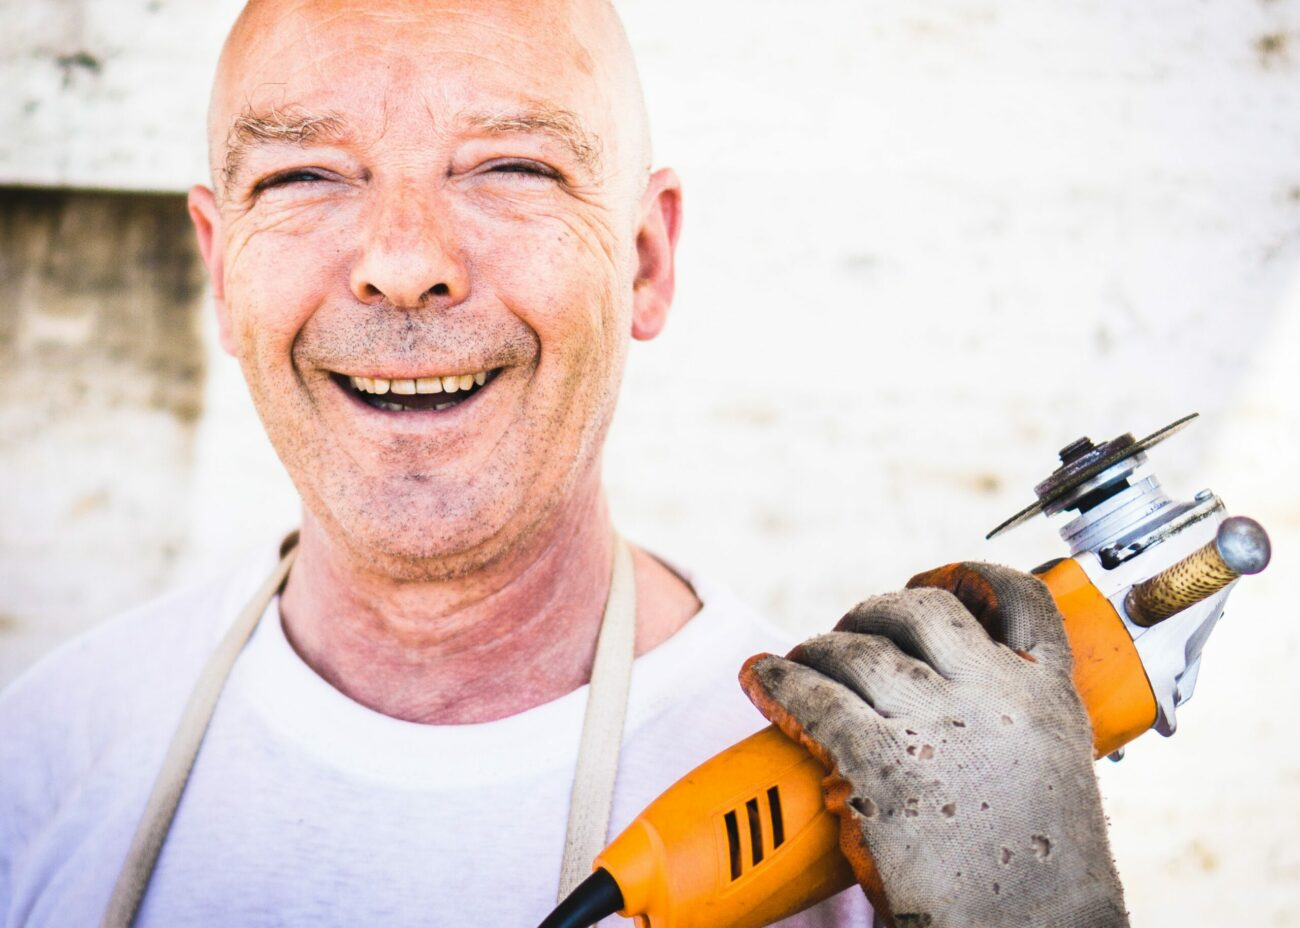 man holding a saw smiling